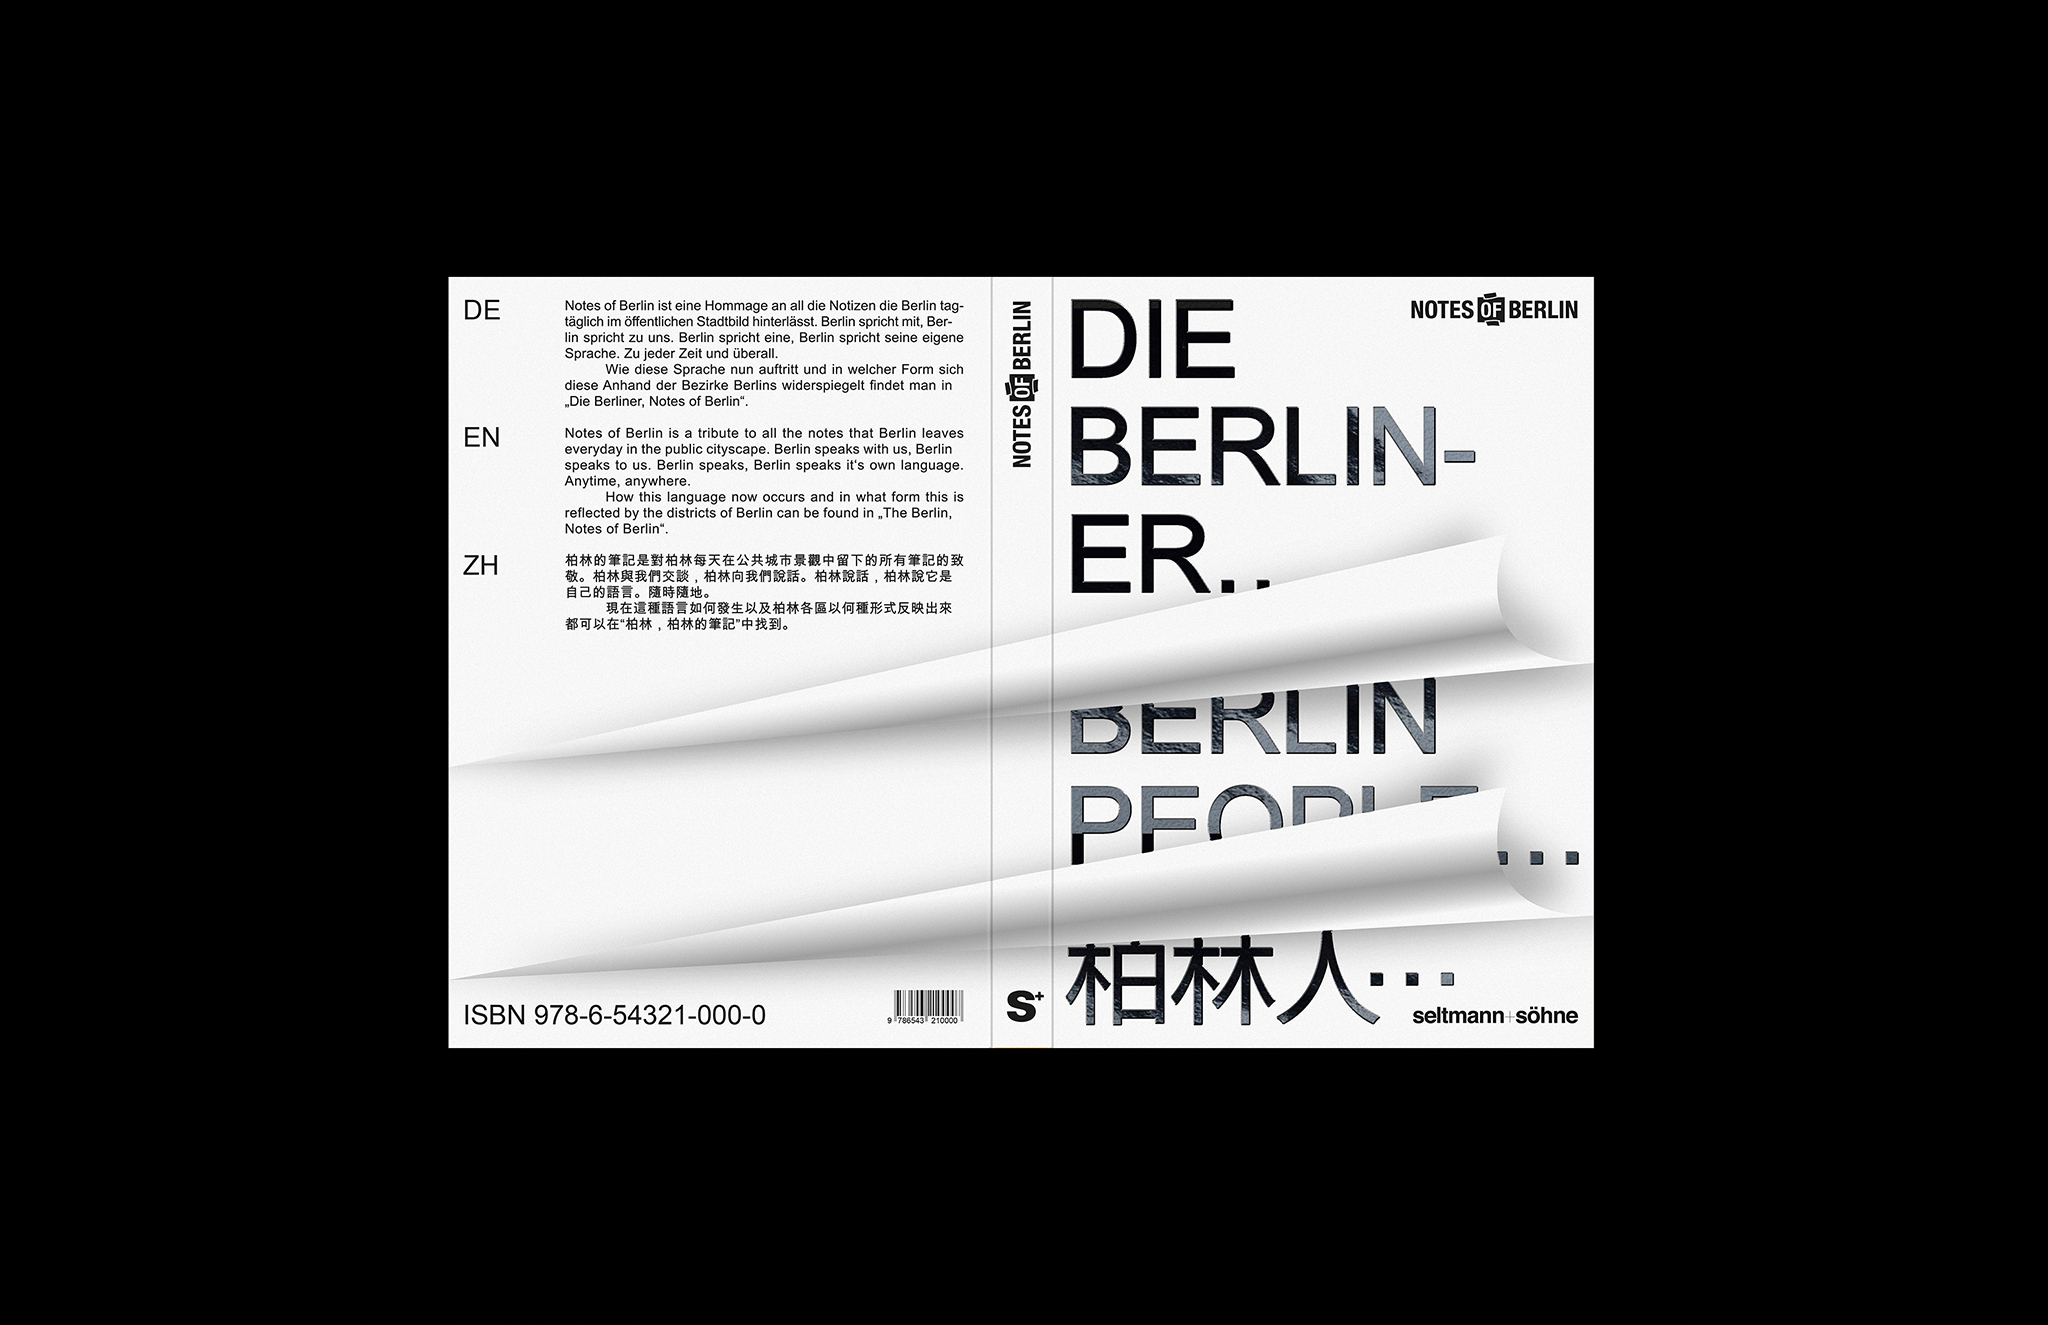 Notes of Berlin Book Cover